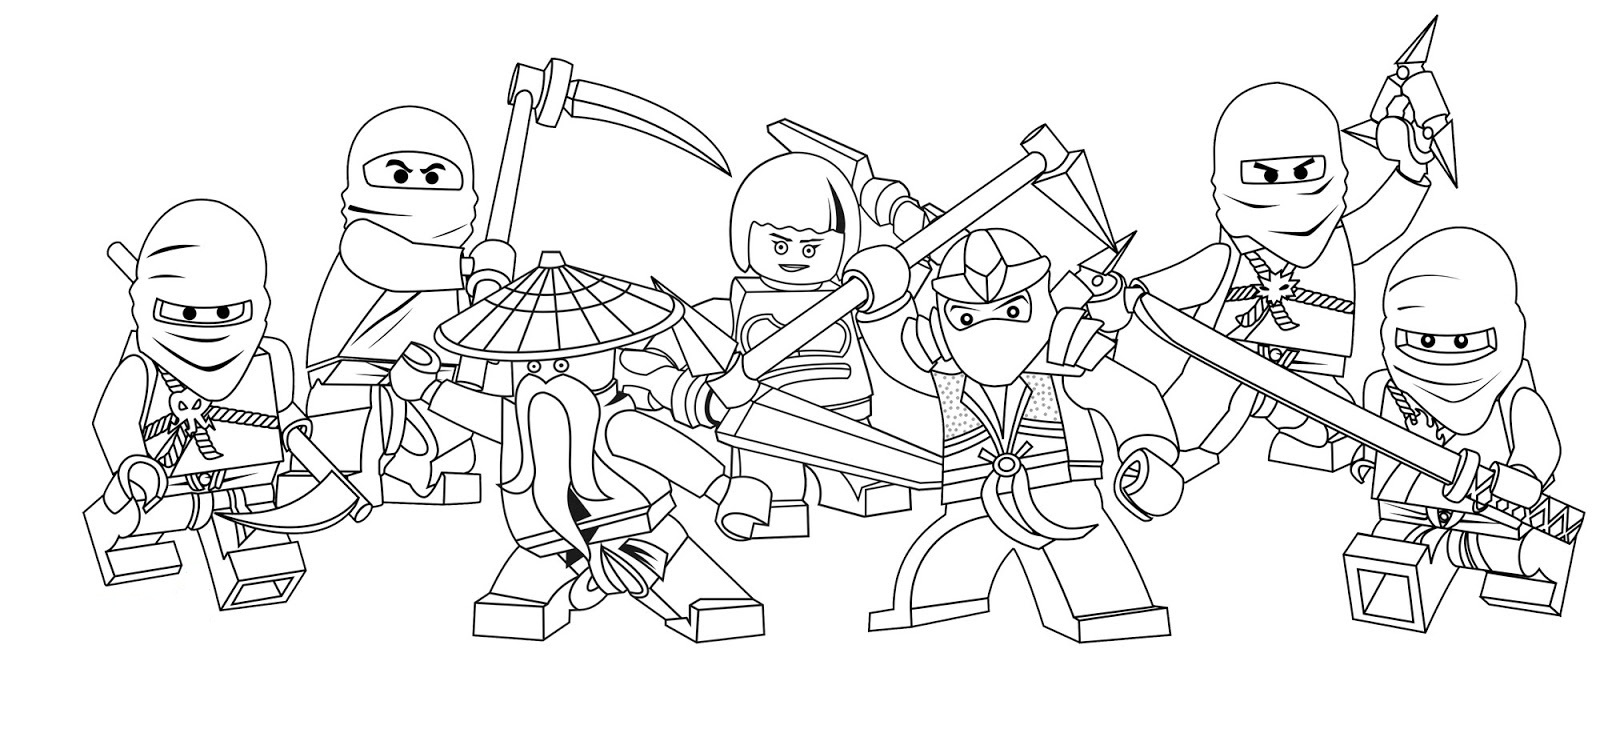 Printable Coloring Pages Lego Ninjago